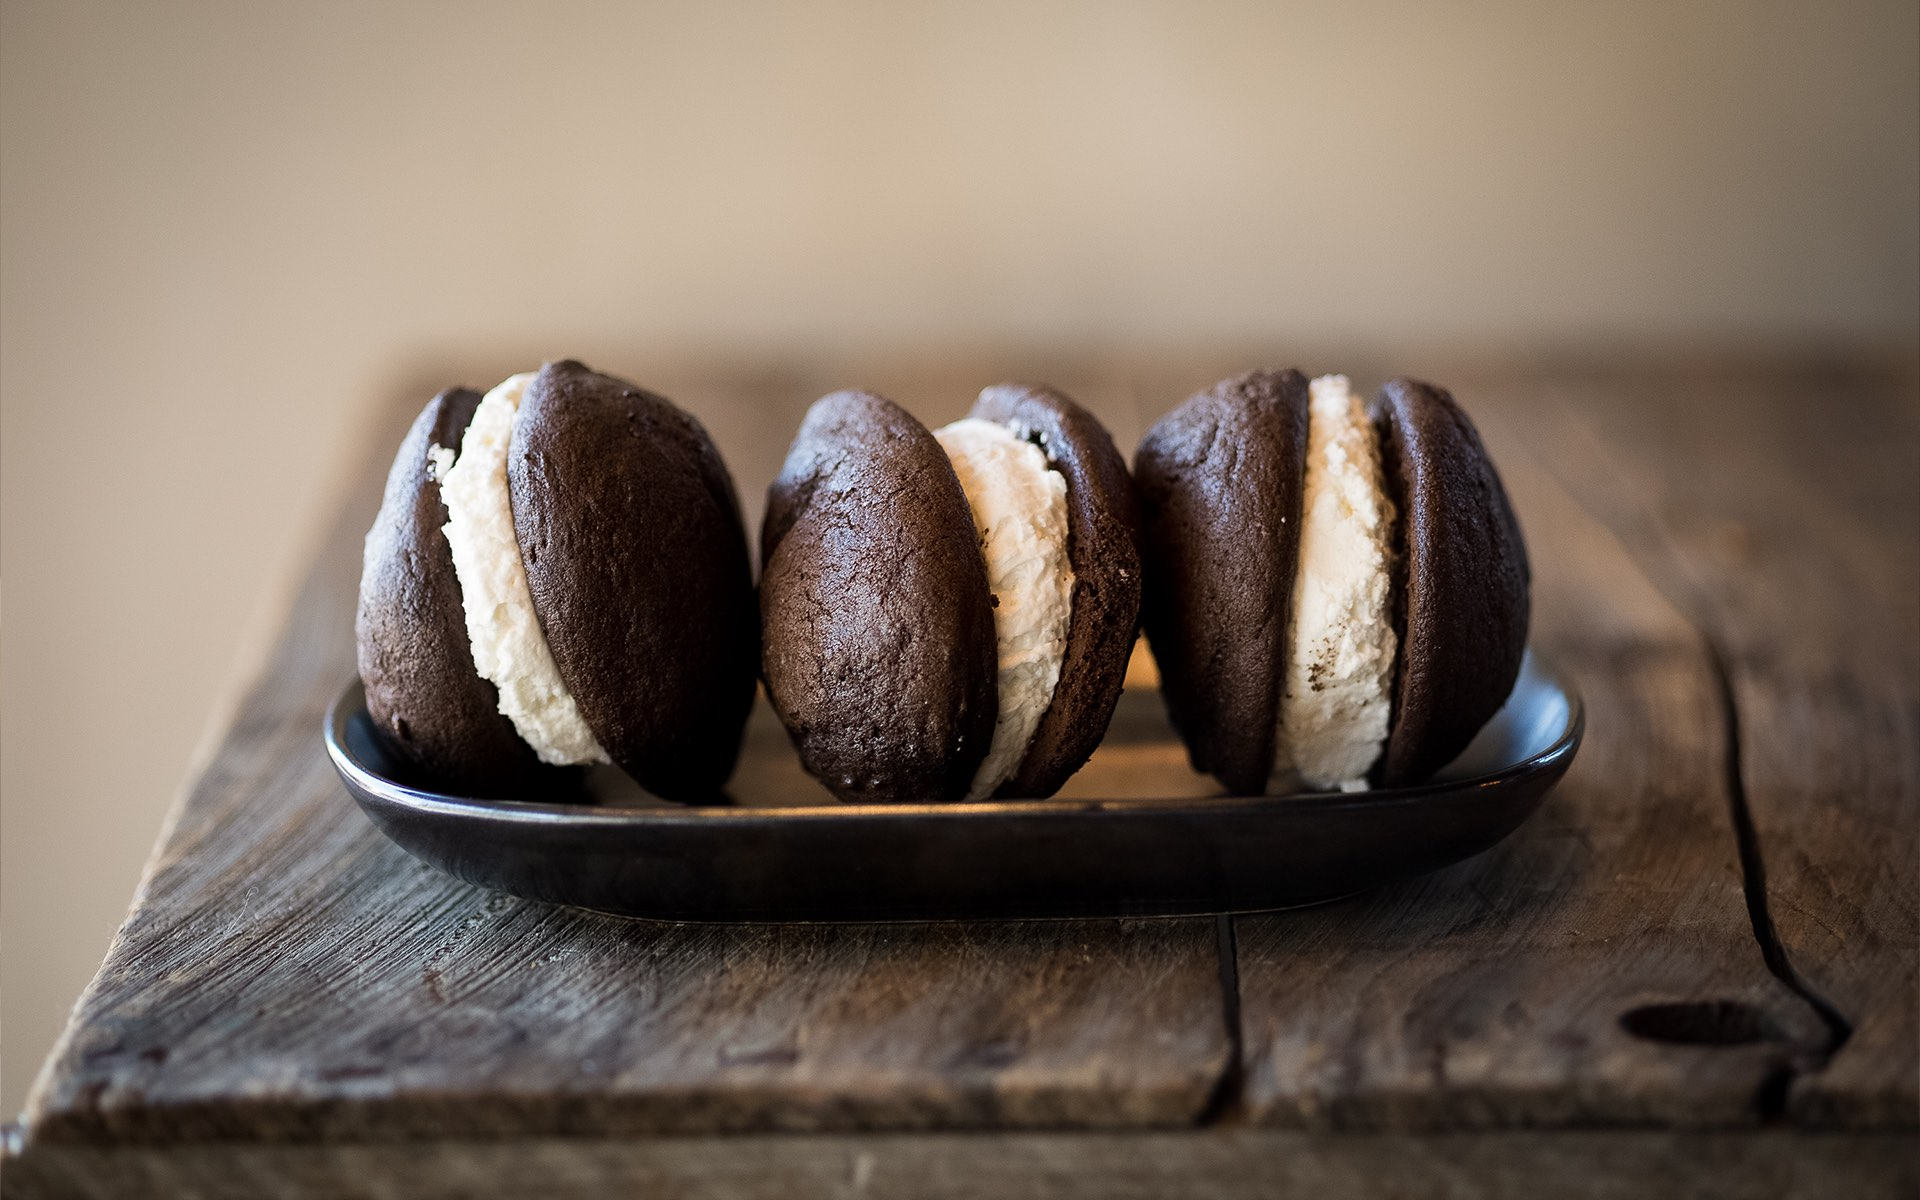 three chocolate dessert sandwiches with cream between them